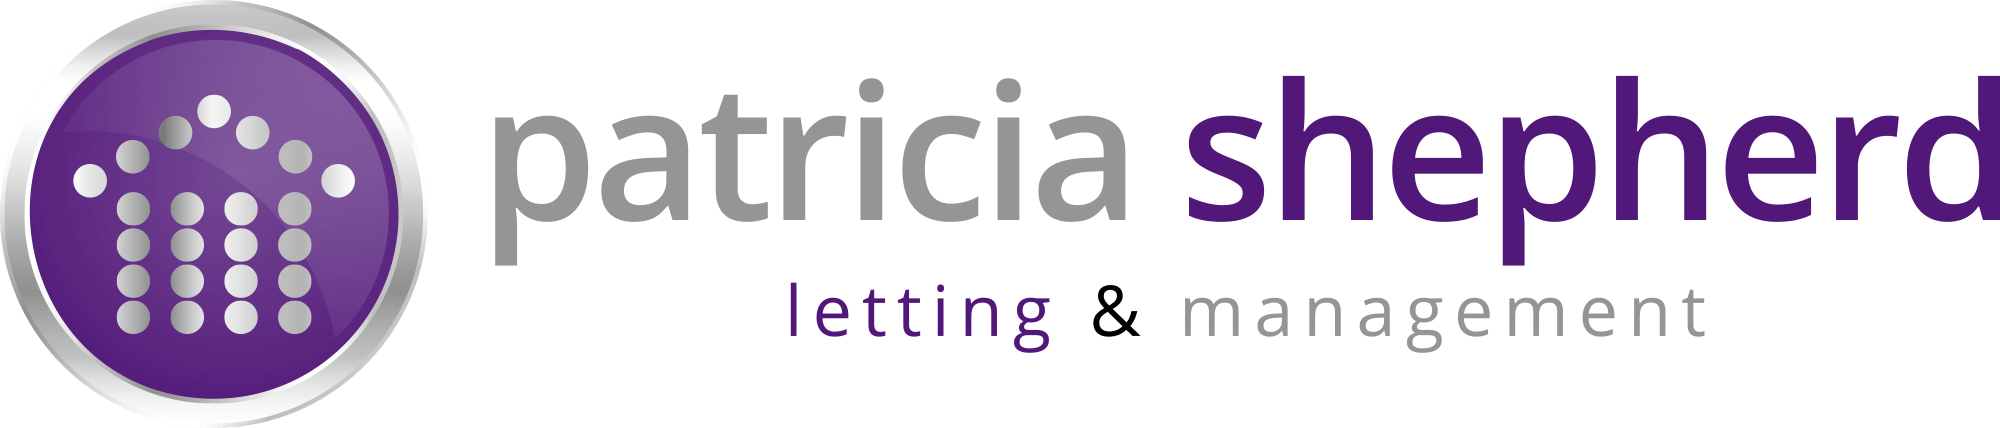 Patricia Shepherd Lettings